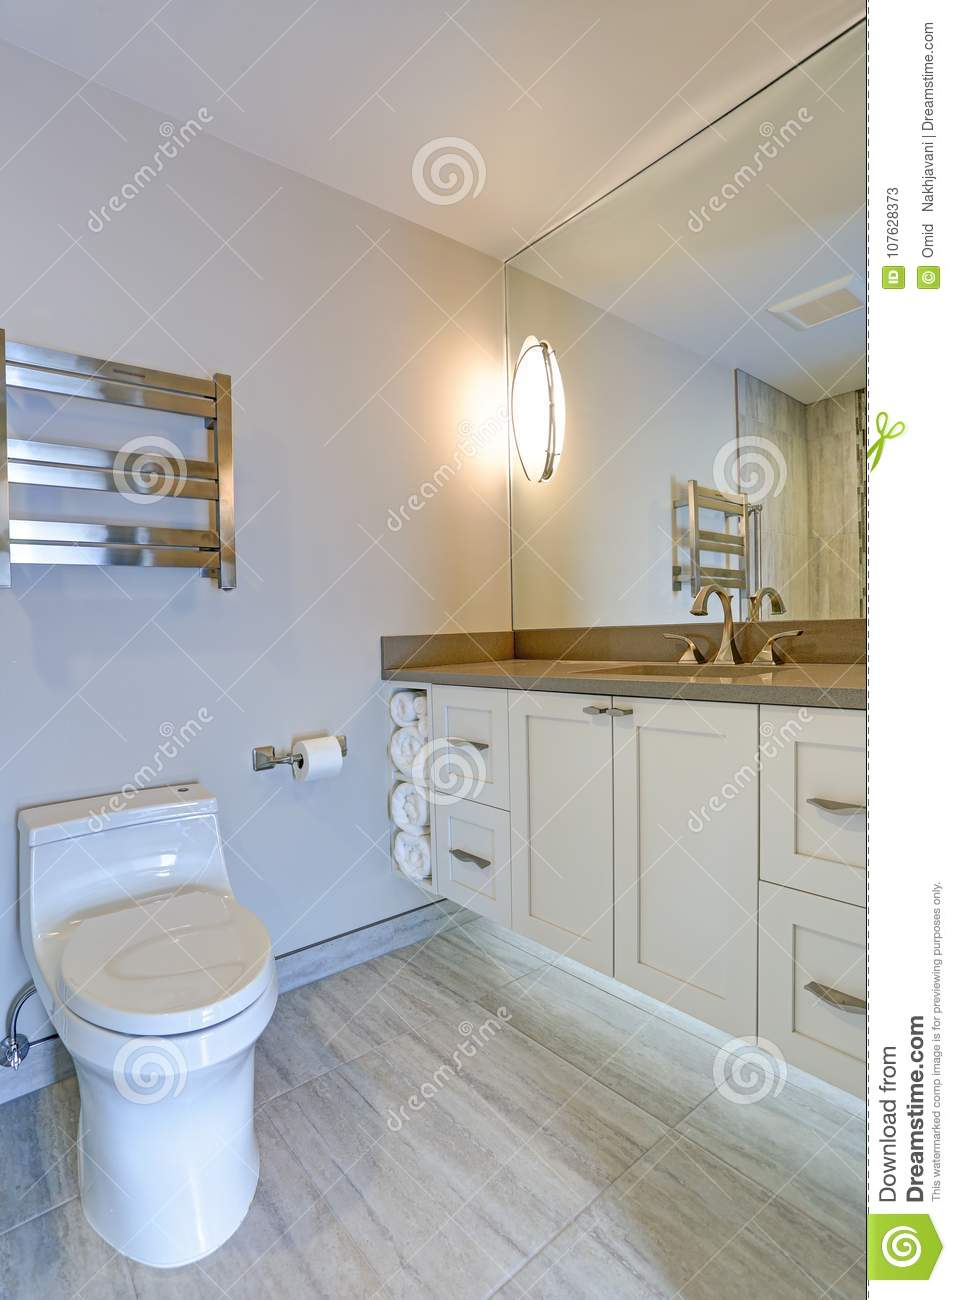 Taupe Quartz Countertop Contemporary Bathroom Design Stock Image Image Of Bathroom